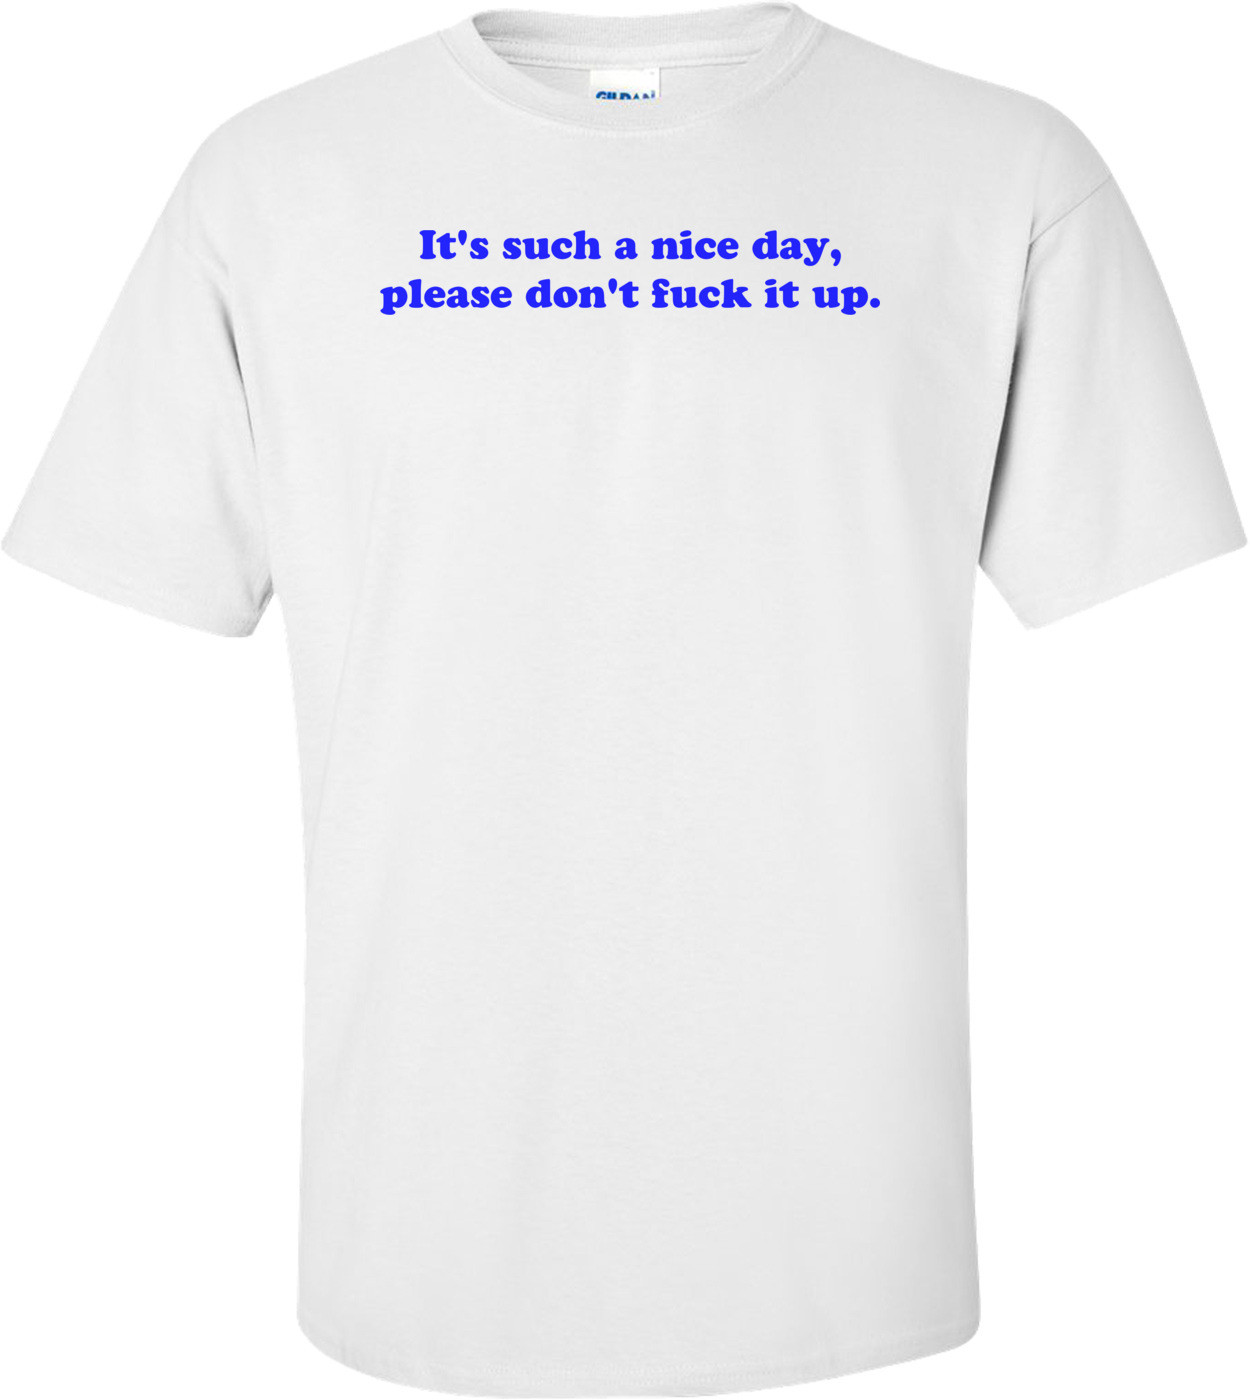 It's such a nice day please don't fuck it up. Shirt